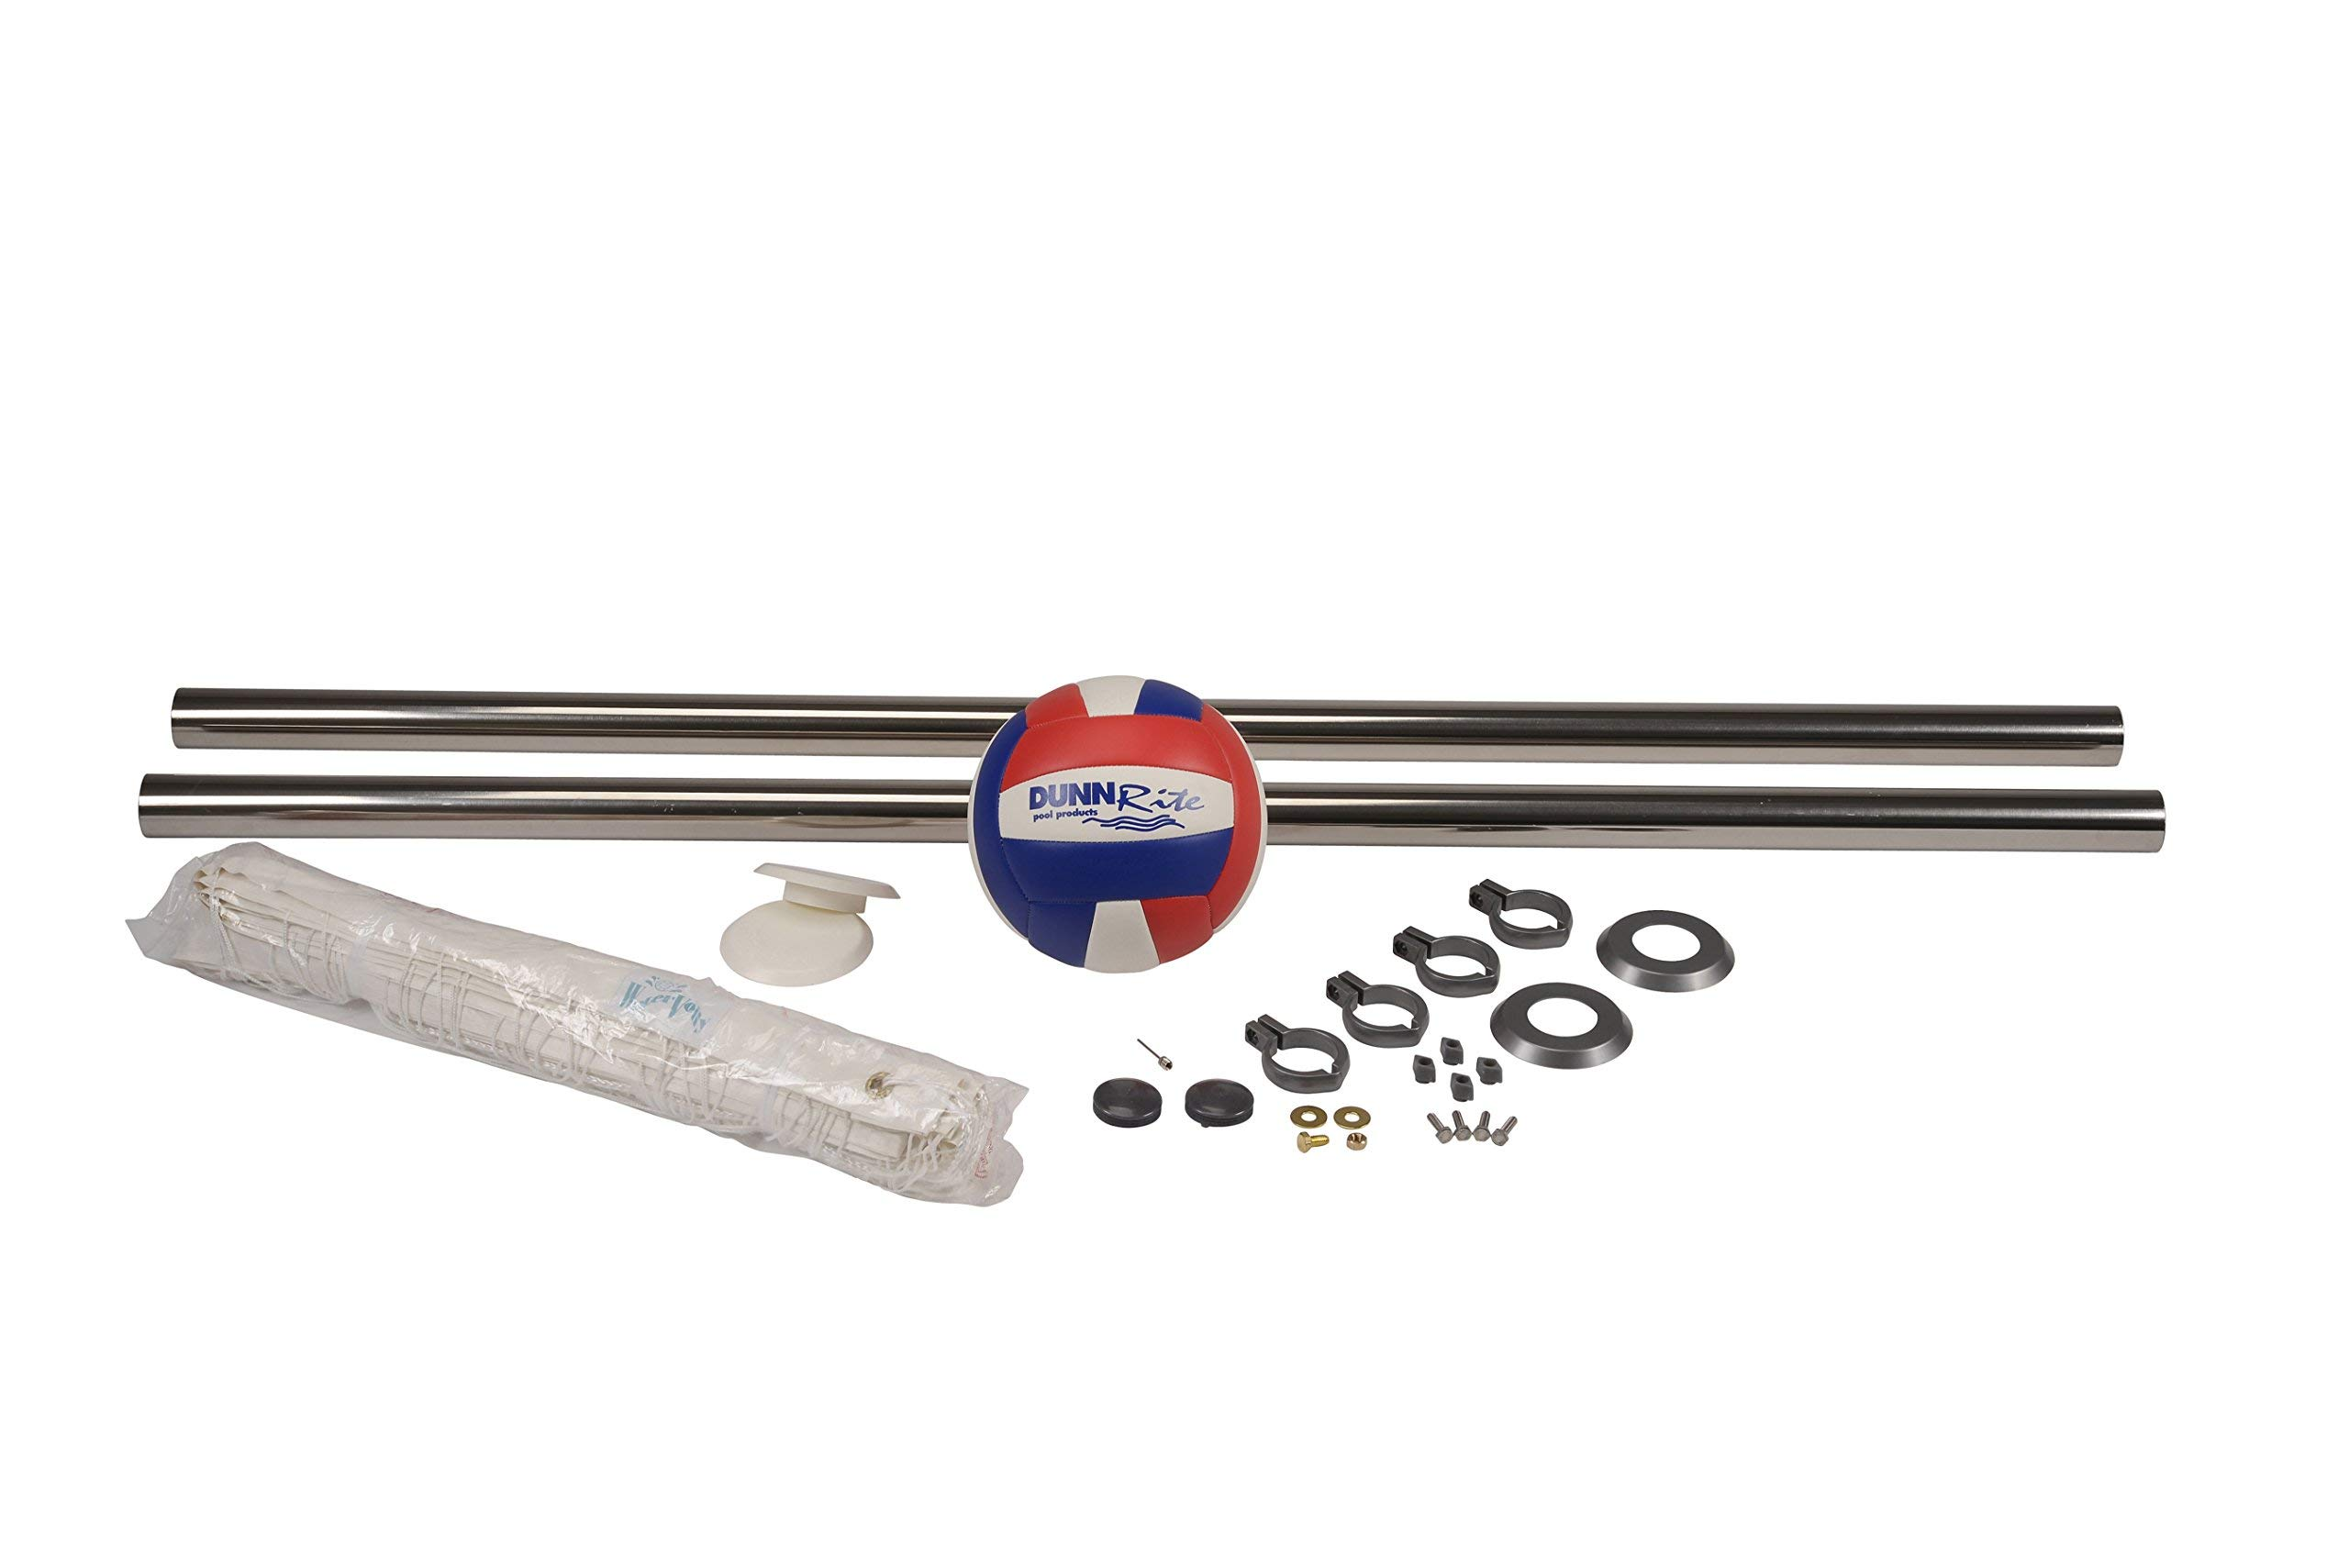 Dunnrite Products Stainless Deckvolly